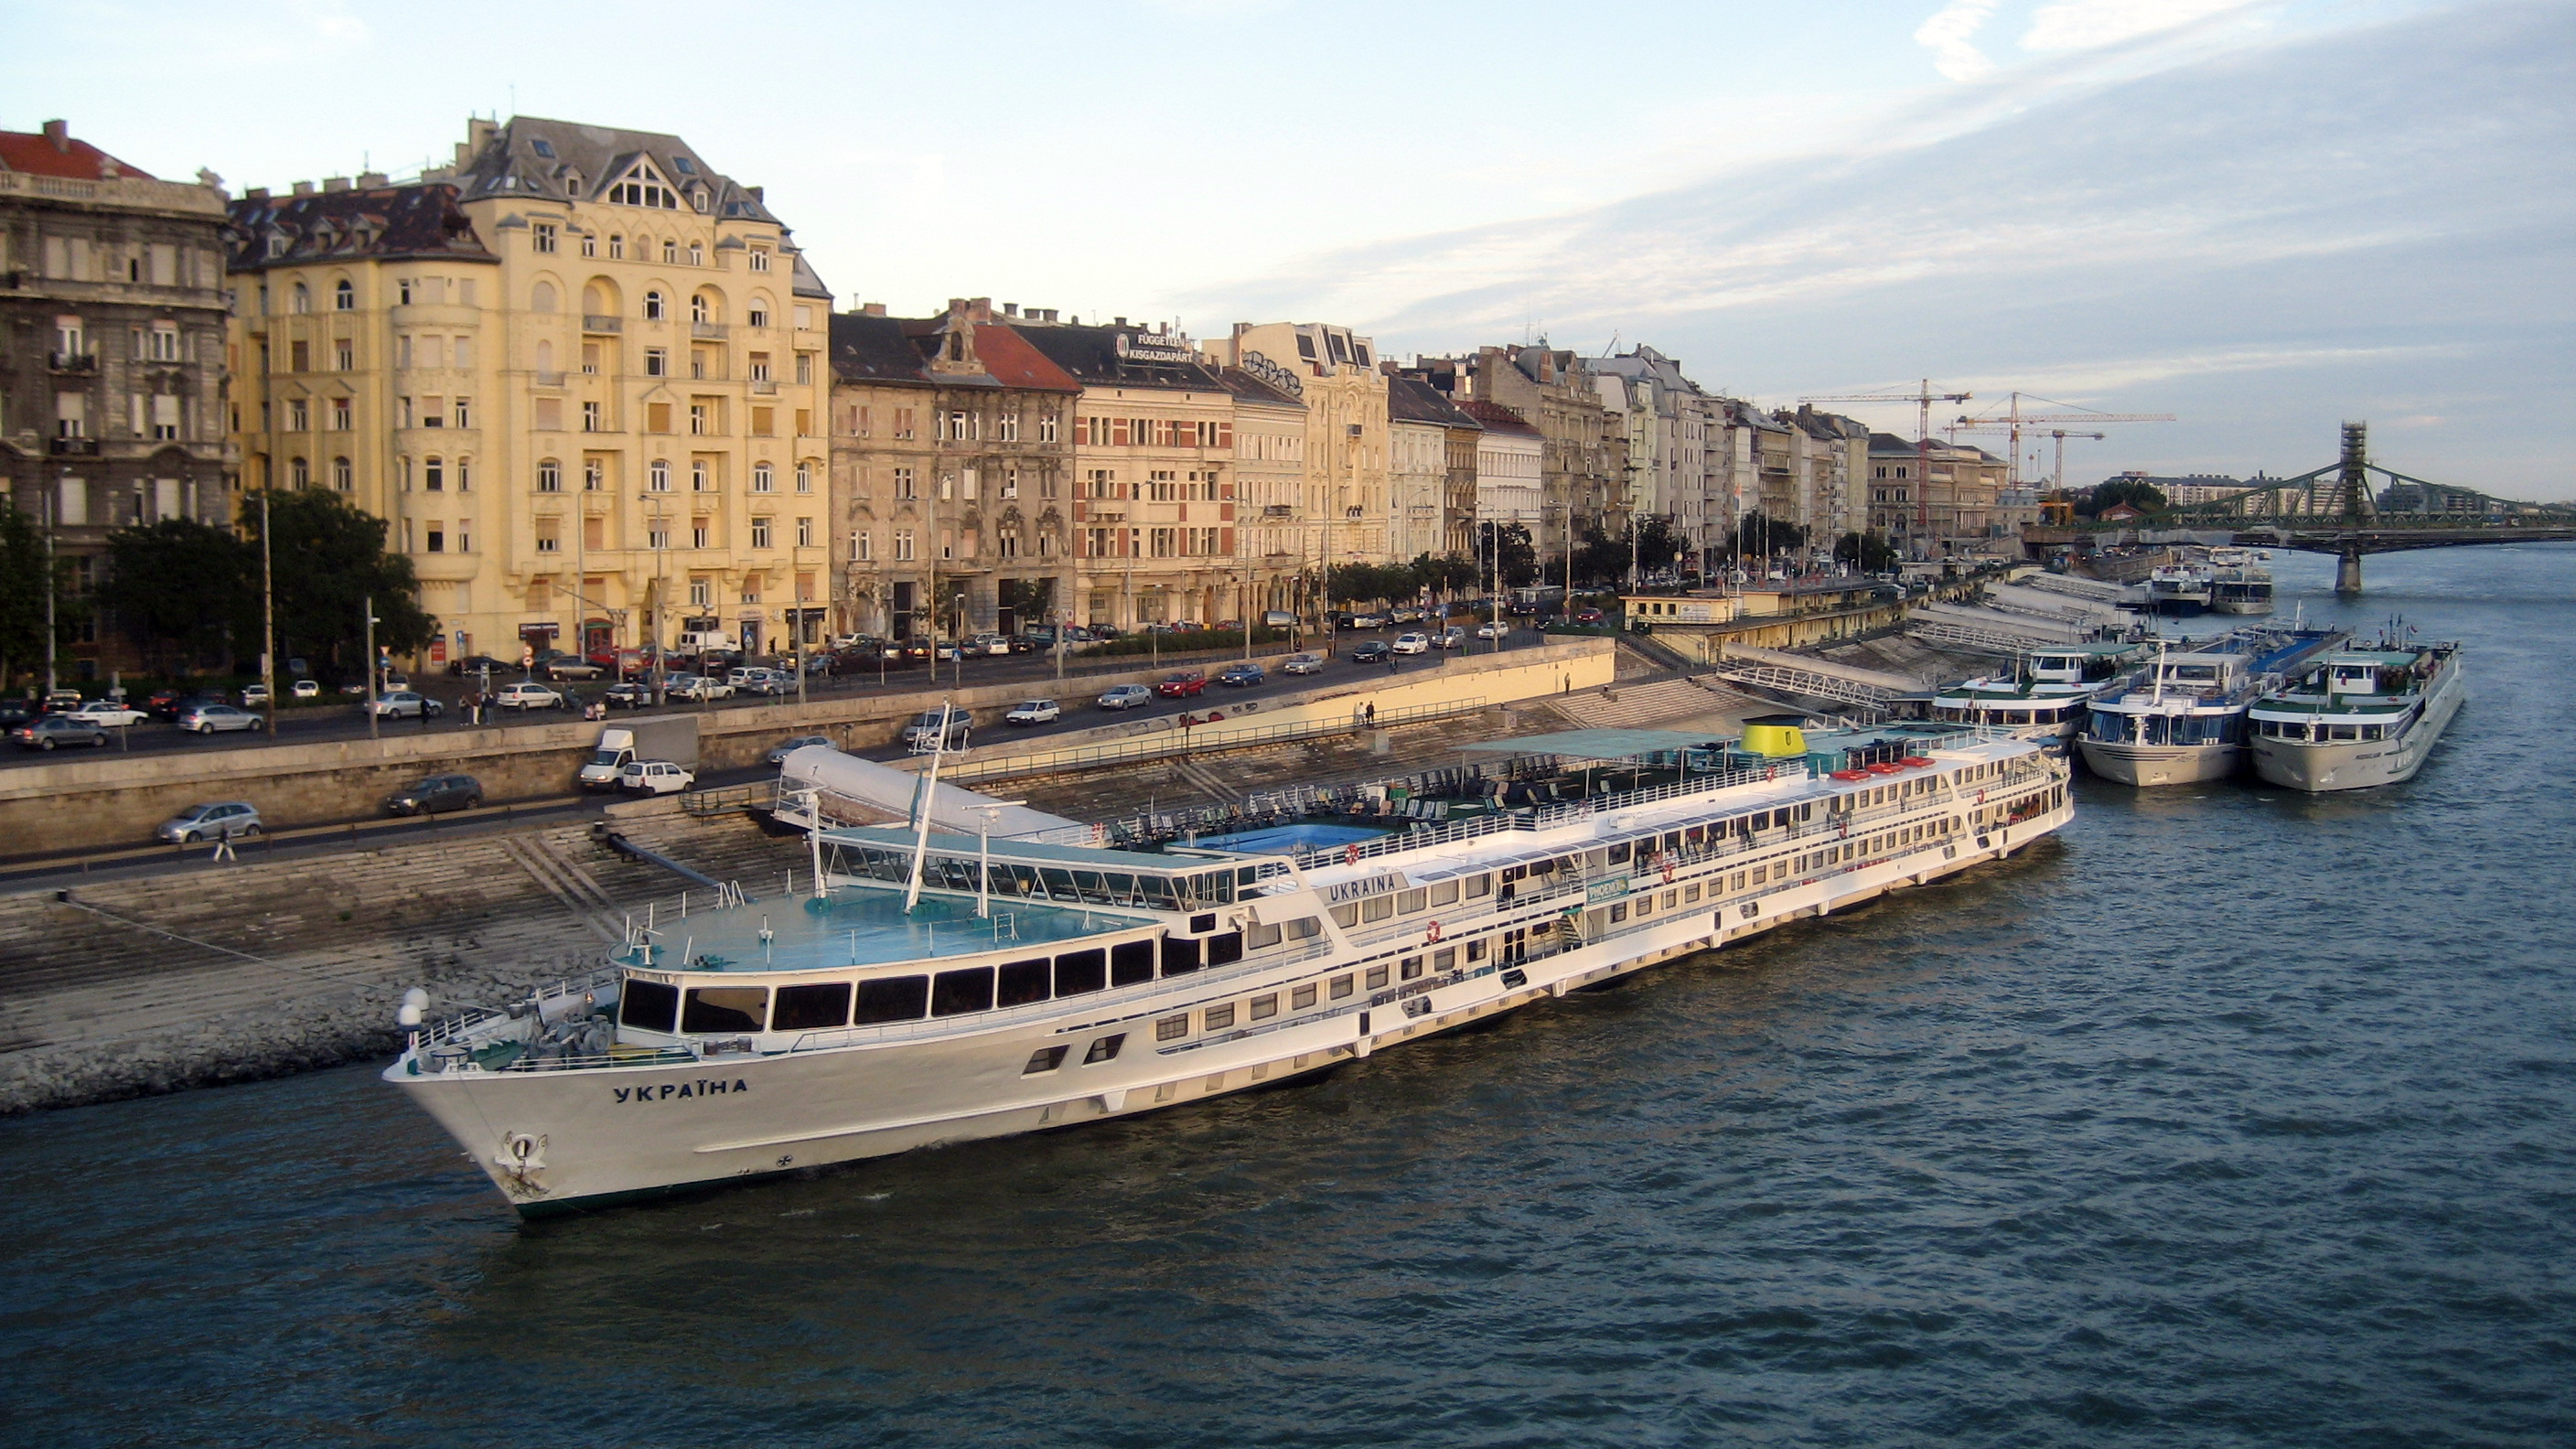 the impact of the river cruise The luxury river cruise experience is supposed to combine the pampering of a five-star hotel stay with the personality of a destination-based vacation.